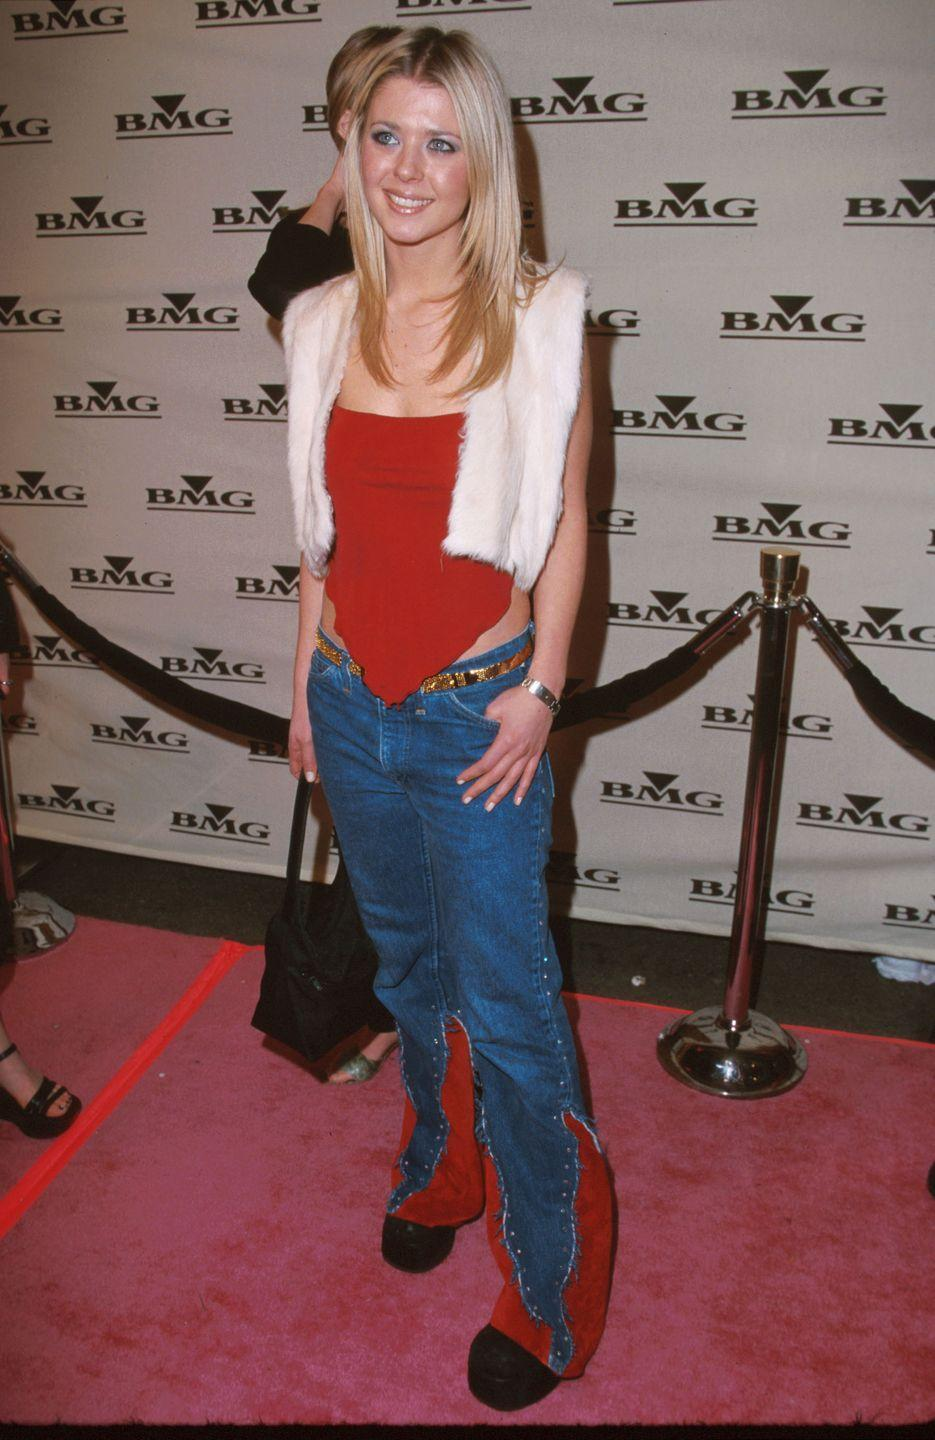 <p>Tara kept it casual at the after-party with some low-rise jeans that had killer red panels to match her red top and floofy white vest.</p>